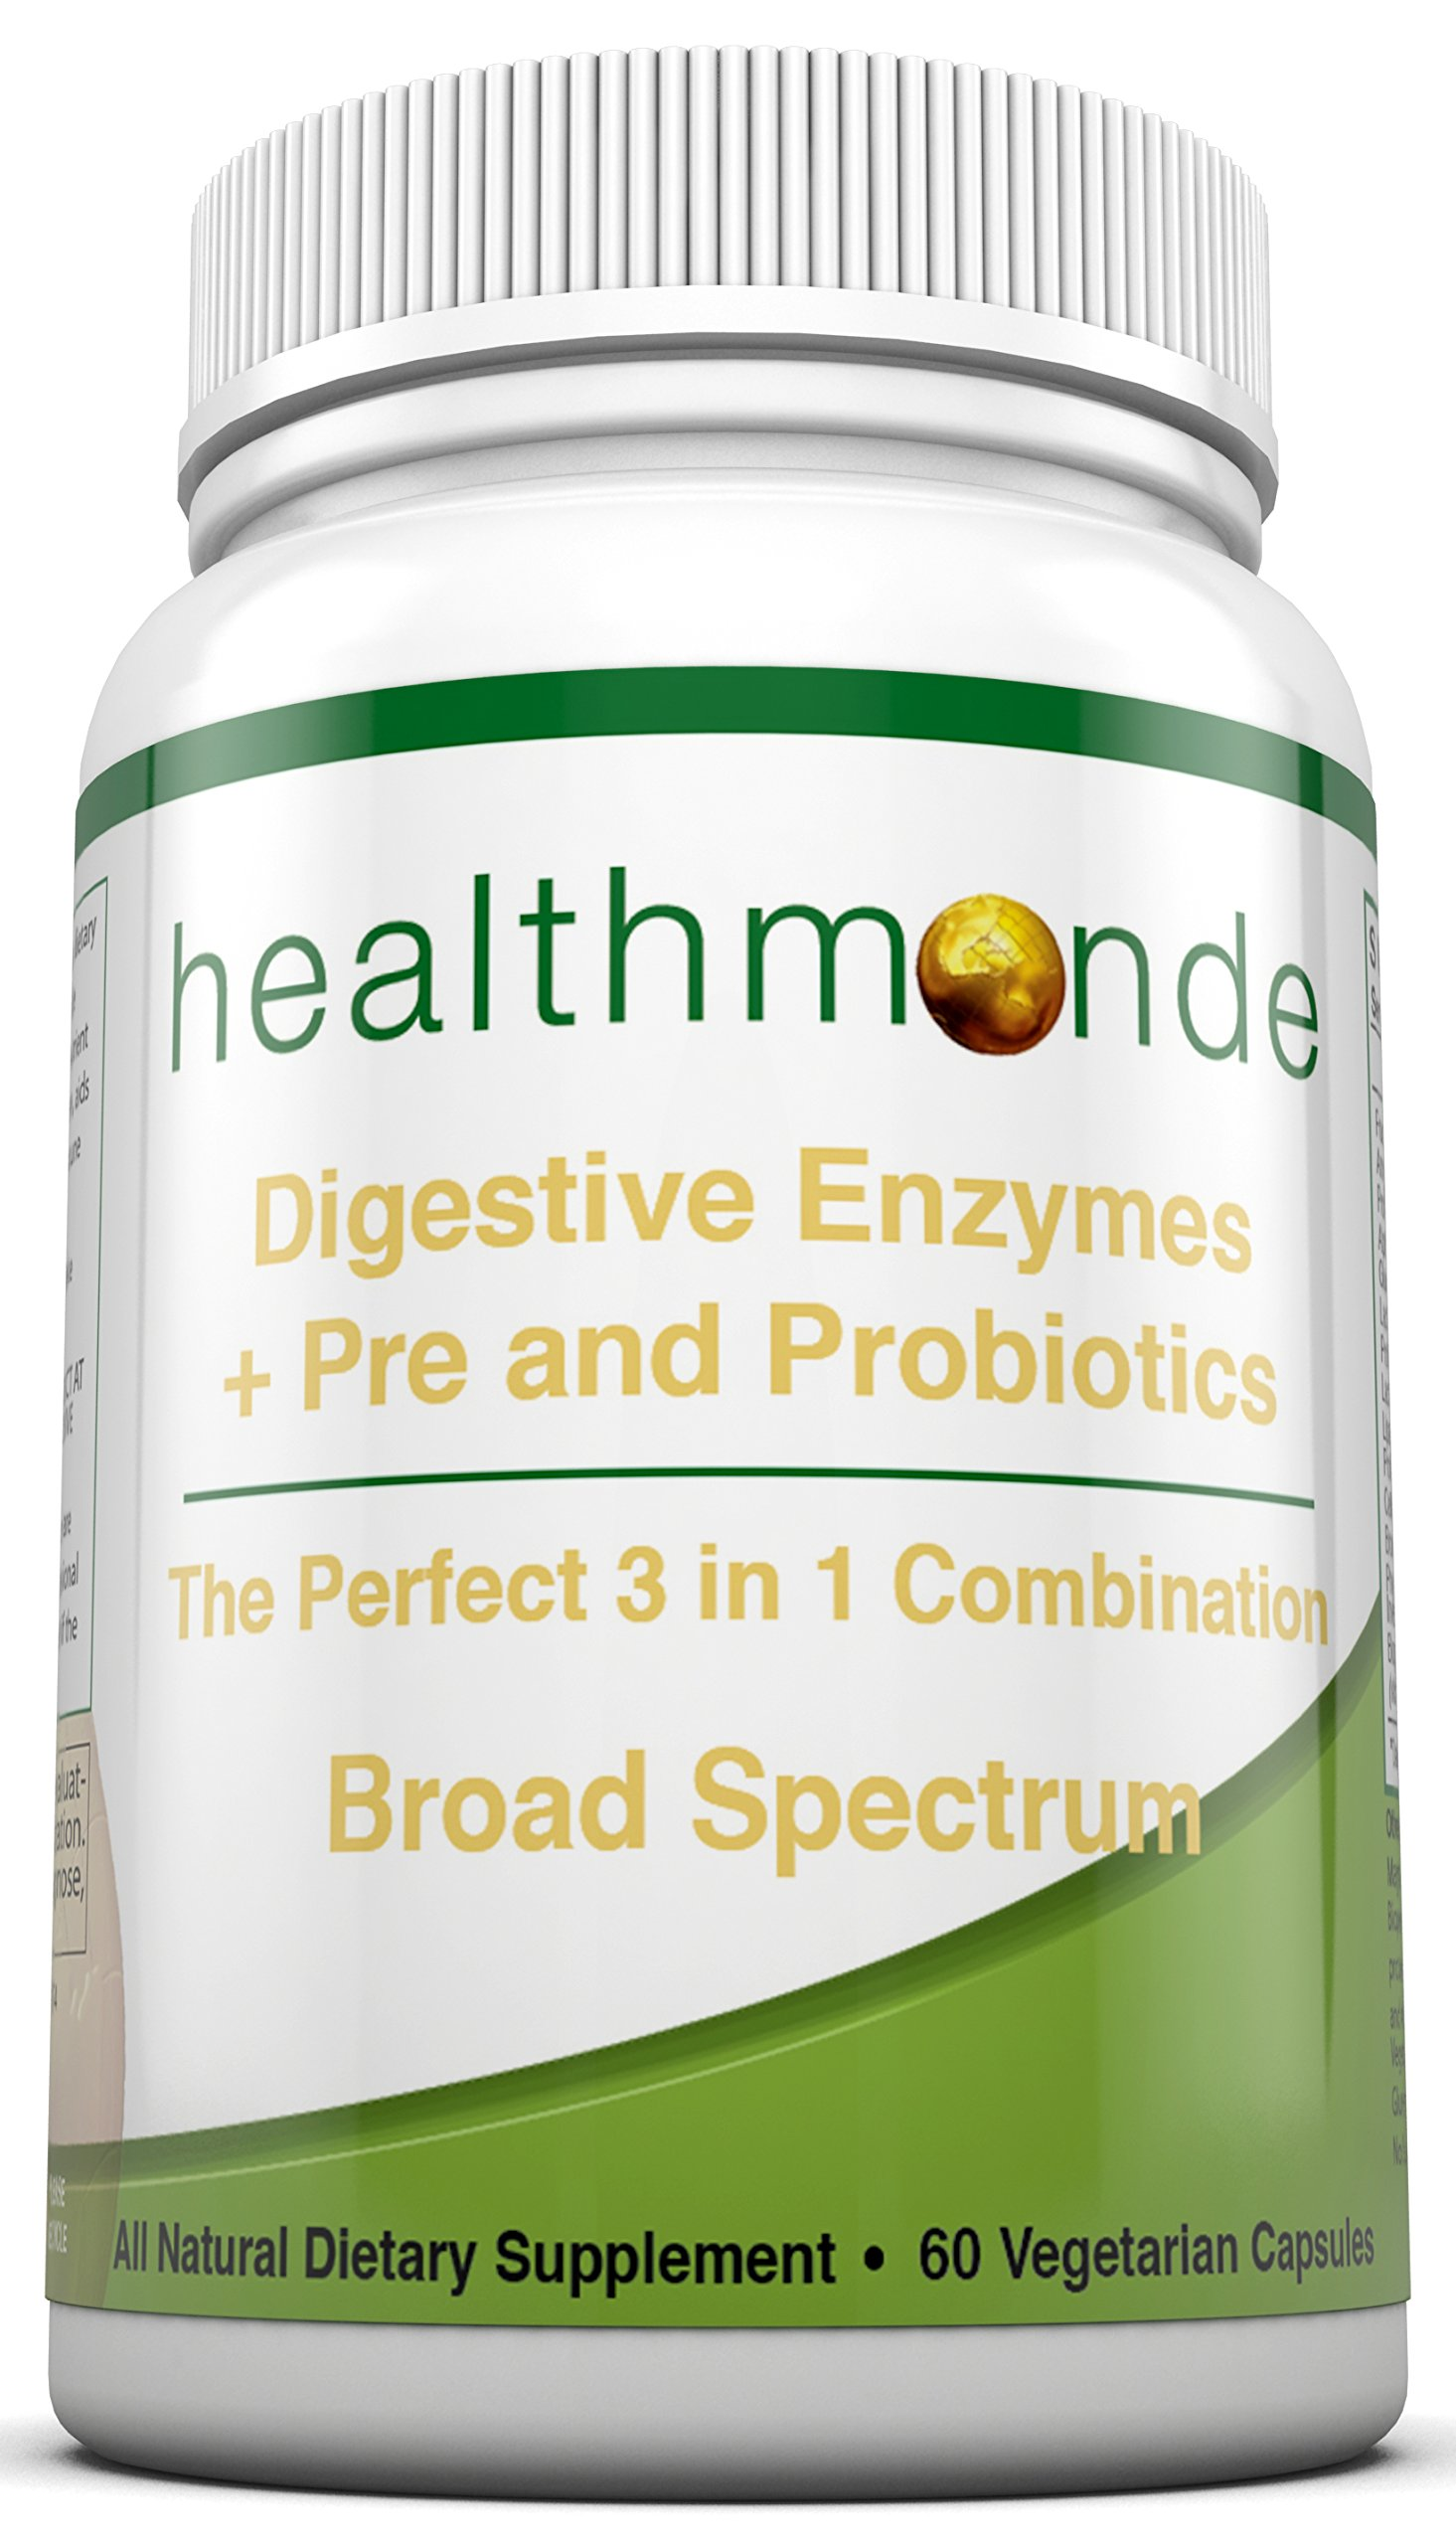 Digestive Enzymes Probiotic and Prebiotic Complex - With Amylase, Bromelain and Lactase - Natural Vegetarian Capsules - Improves Digestion and Absorption - Relieves Gas and Bloating - Vegan Friendly